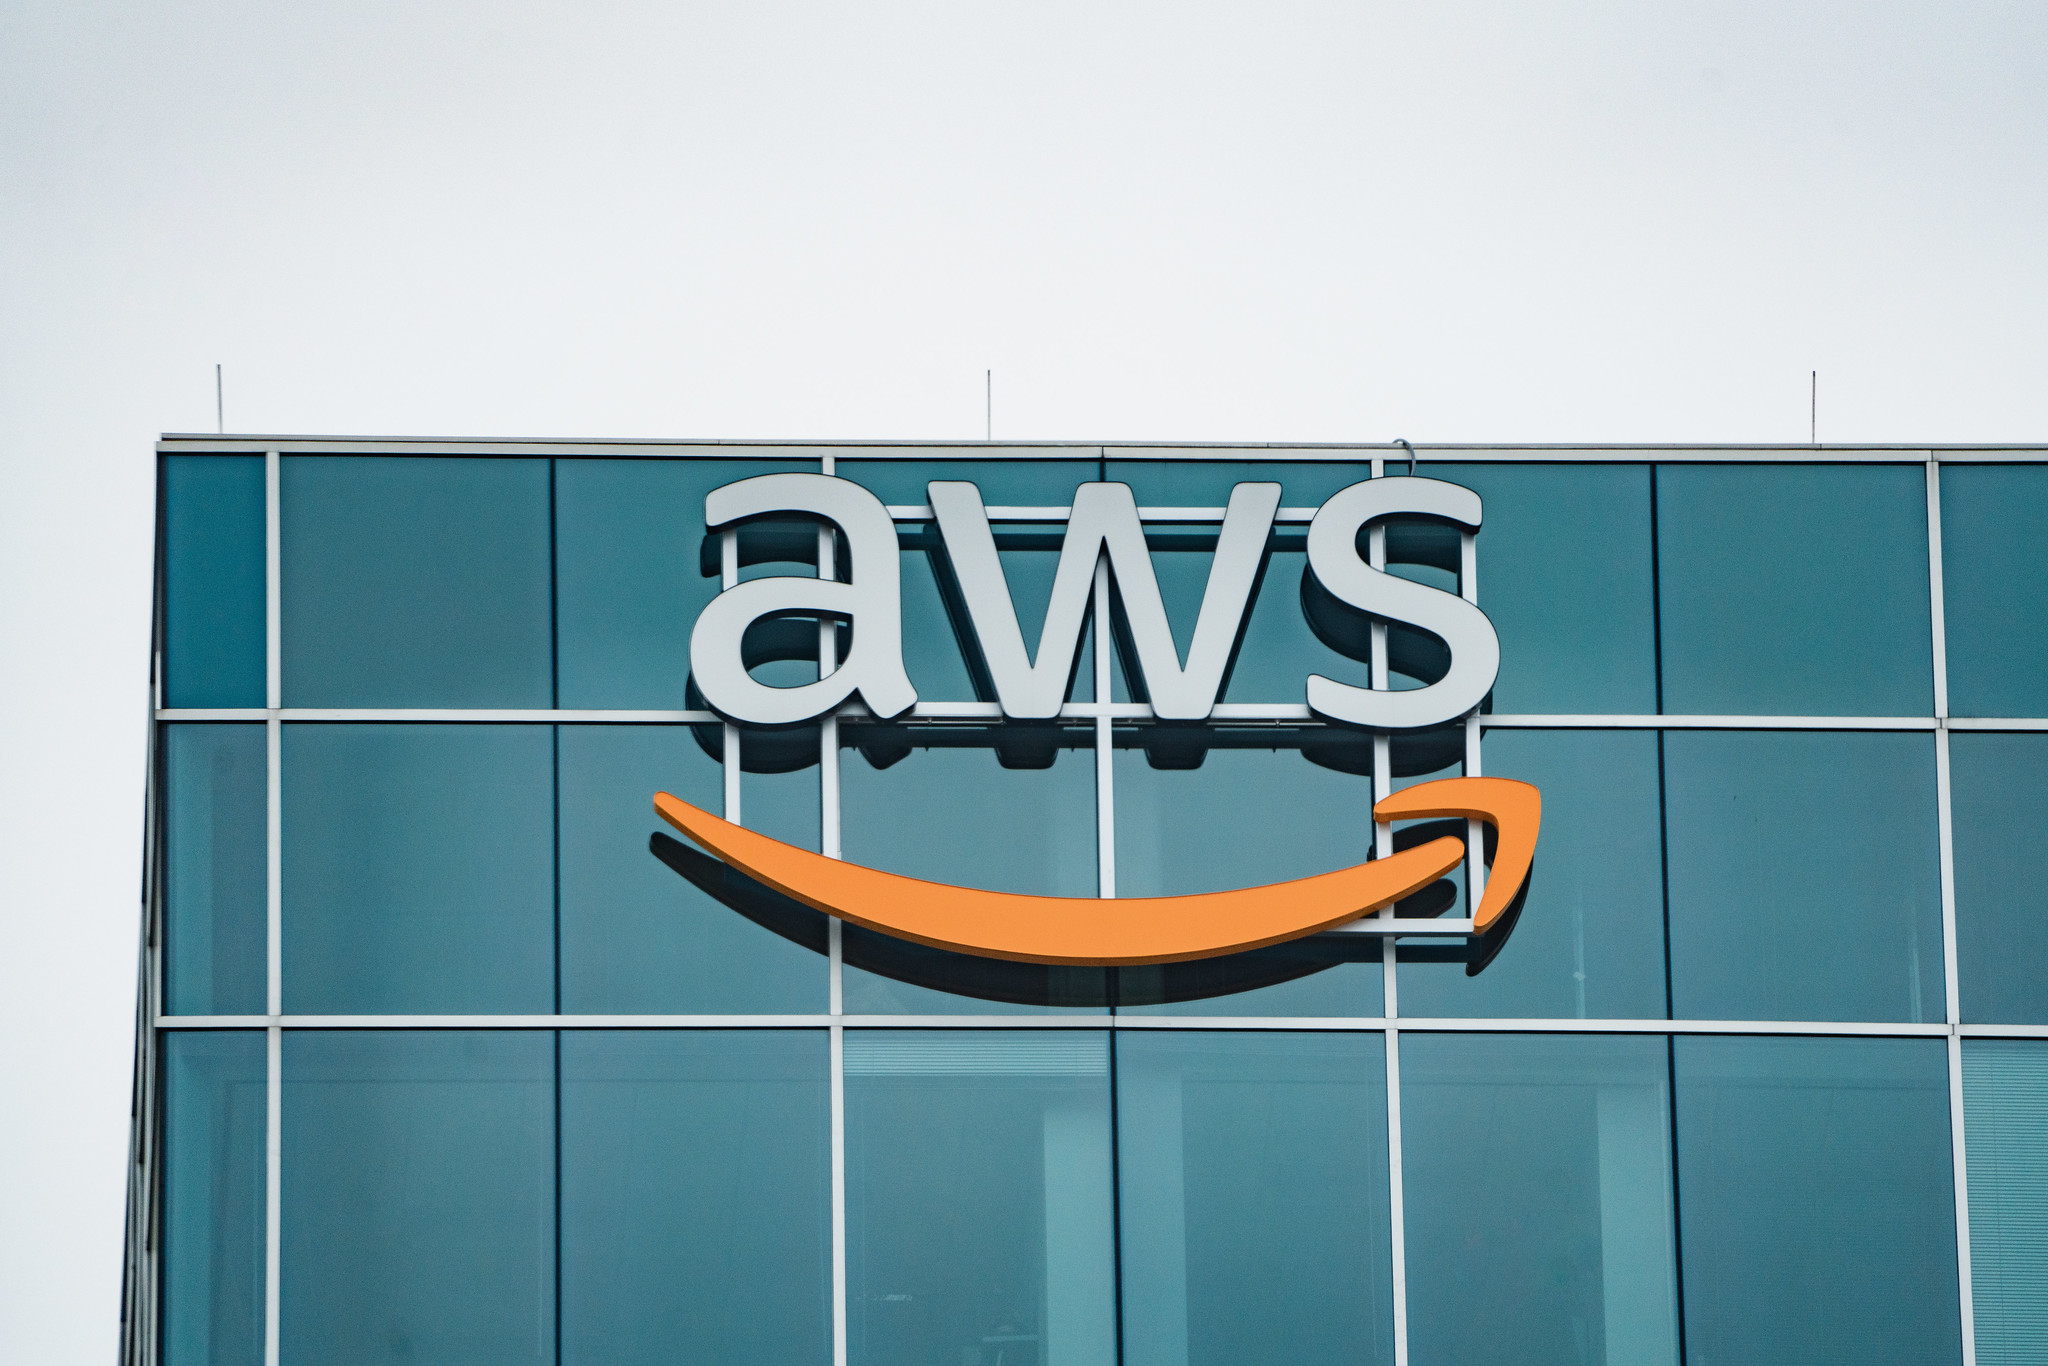 Amazon Web Services Inc. on Tuesday launched an enhanced version of its Amazon Managed Blockchain service that features support for the popular Ethereum blockchain platform. Launched in 2015, Ethereum is the basis of Ether, the second most valuable cryptocurr…